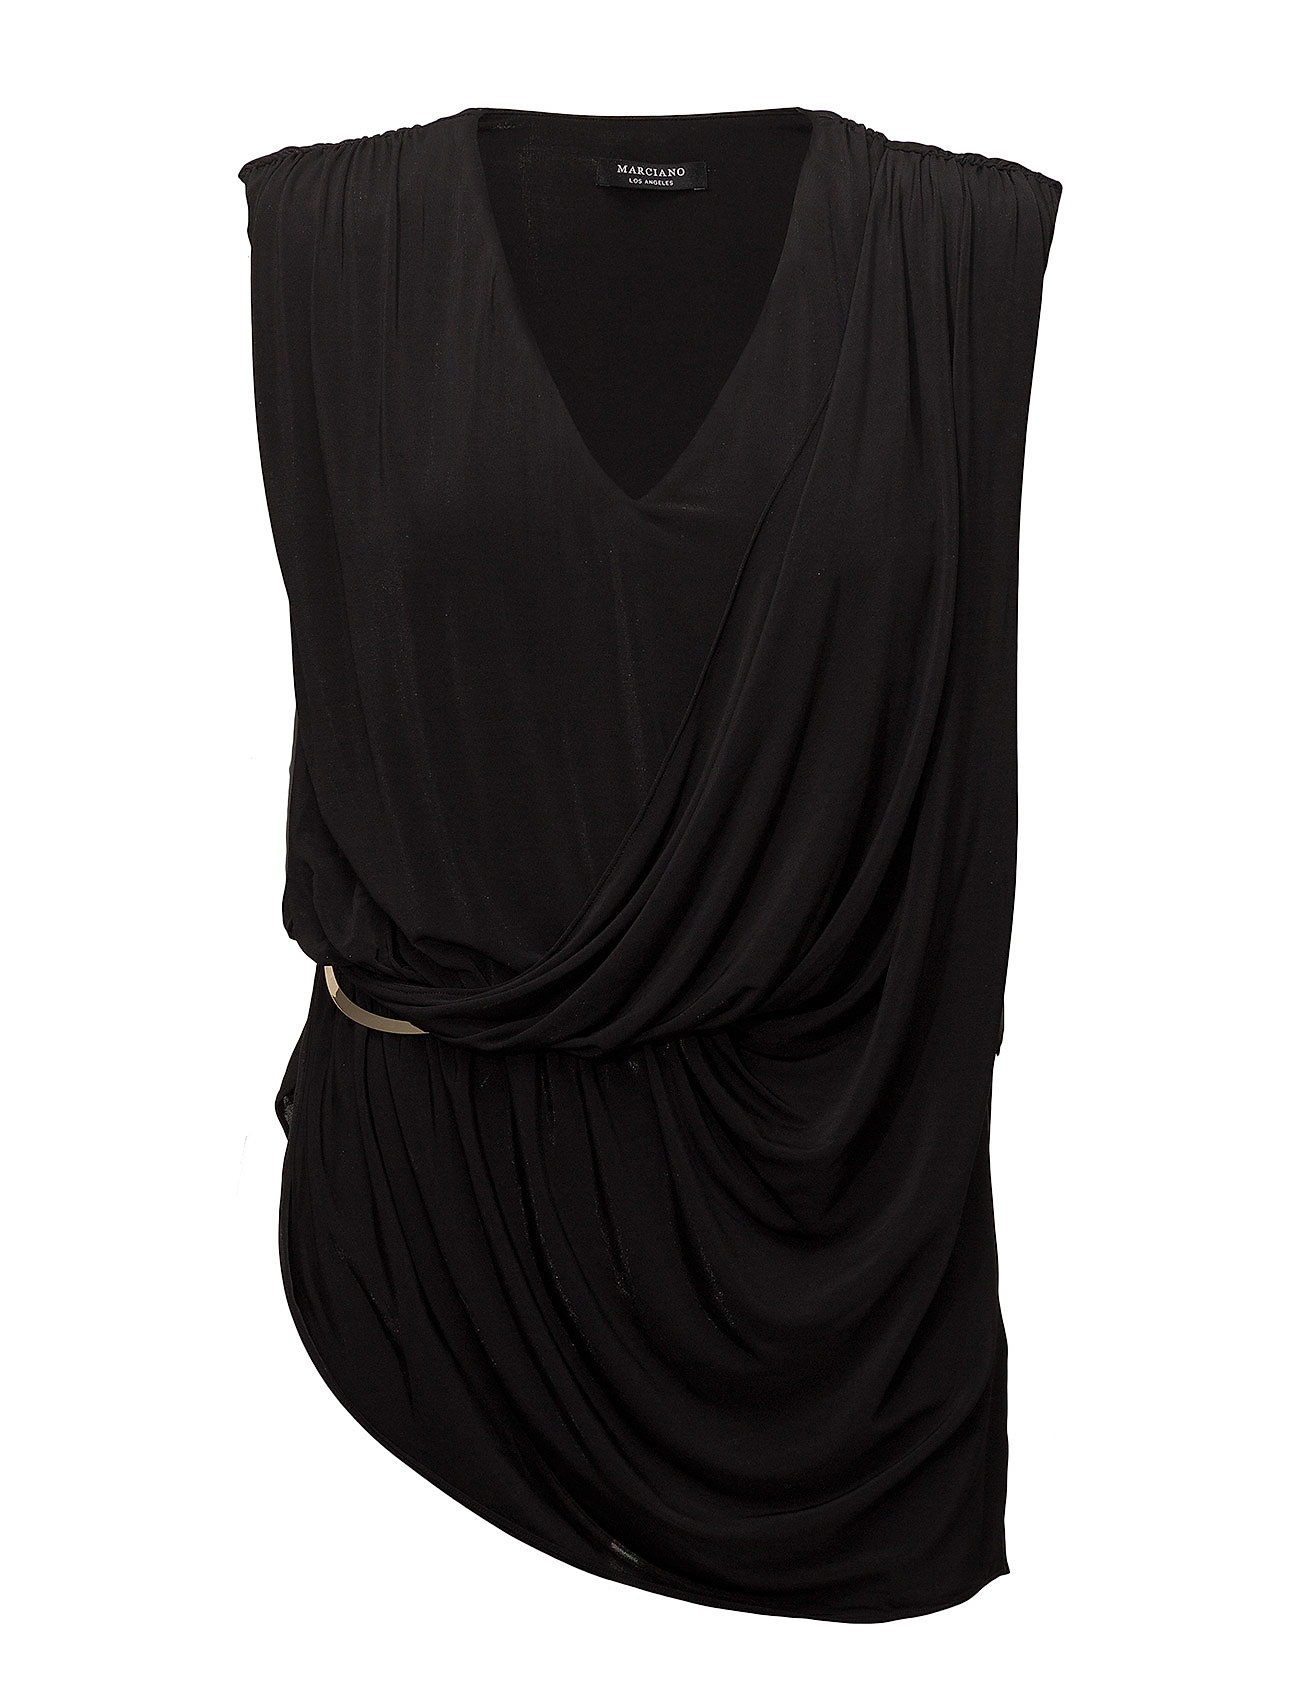 Raped Top (Jet Black W  Fros) (119 €) - Marciano by GUESS -  0798b70f4